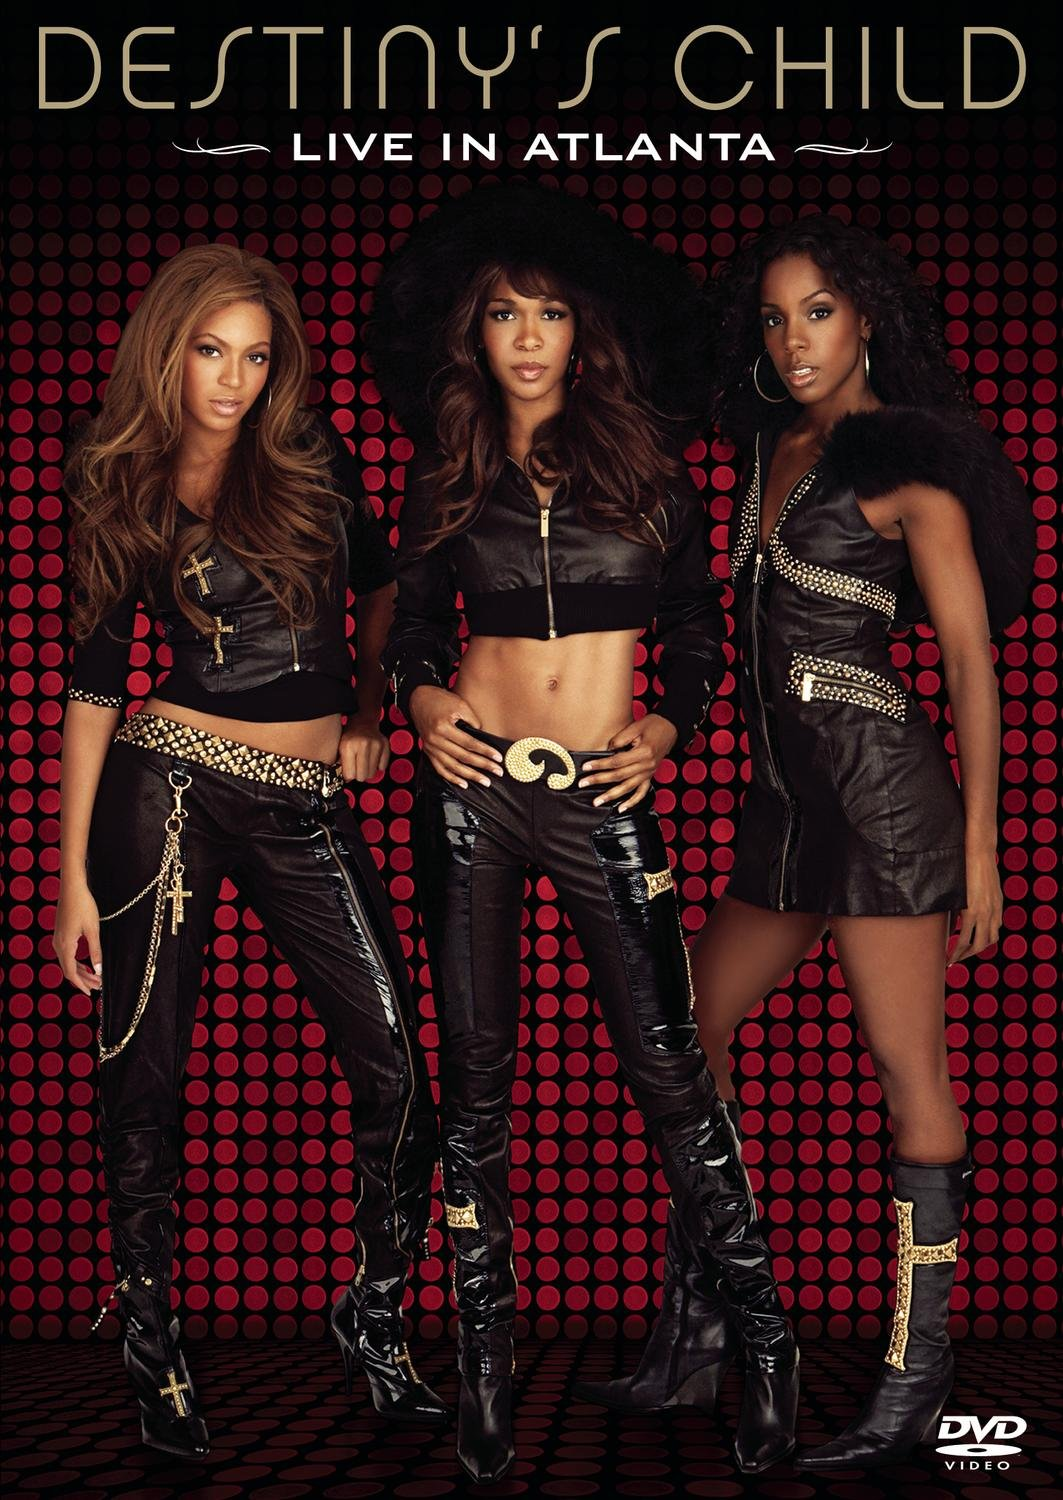 Live in Atlanta - Destiny's Child by Sony